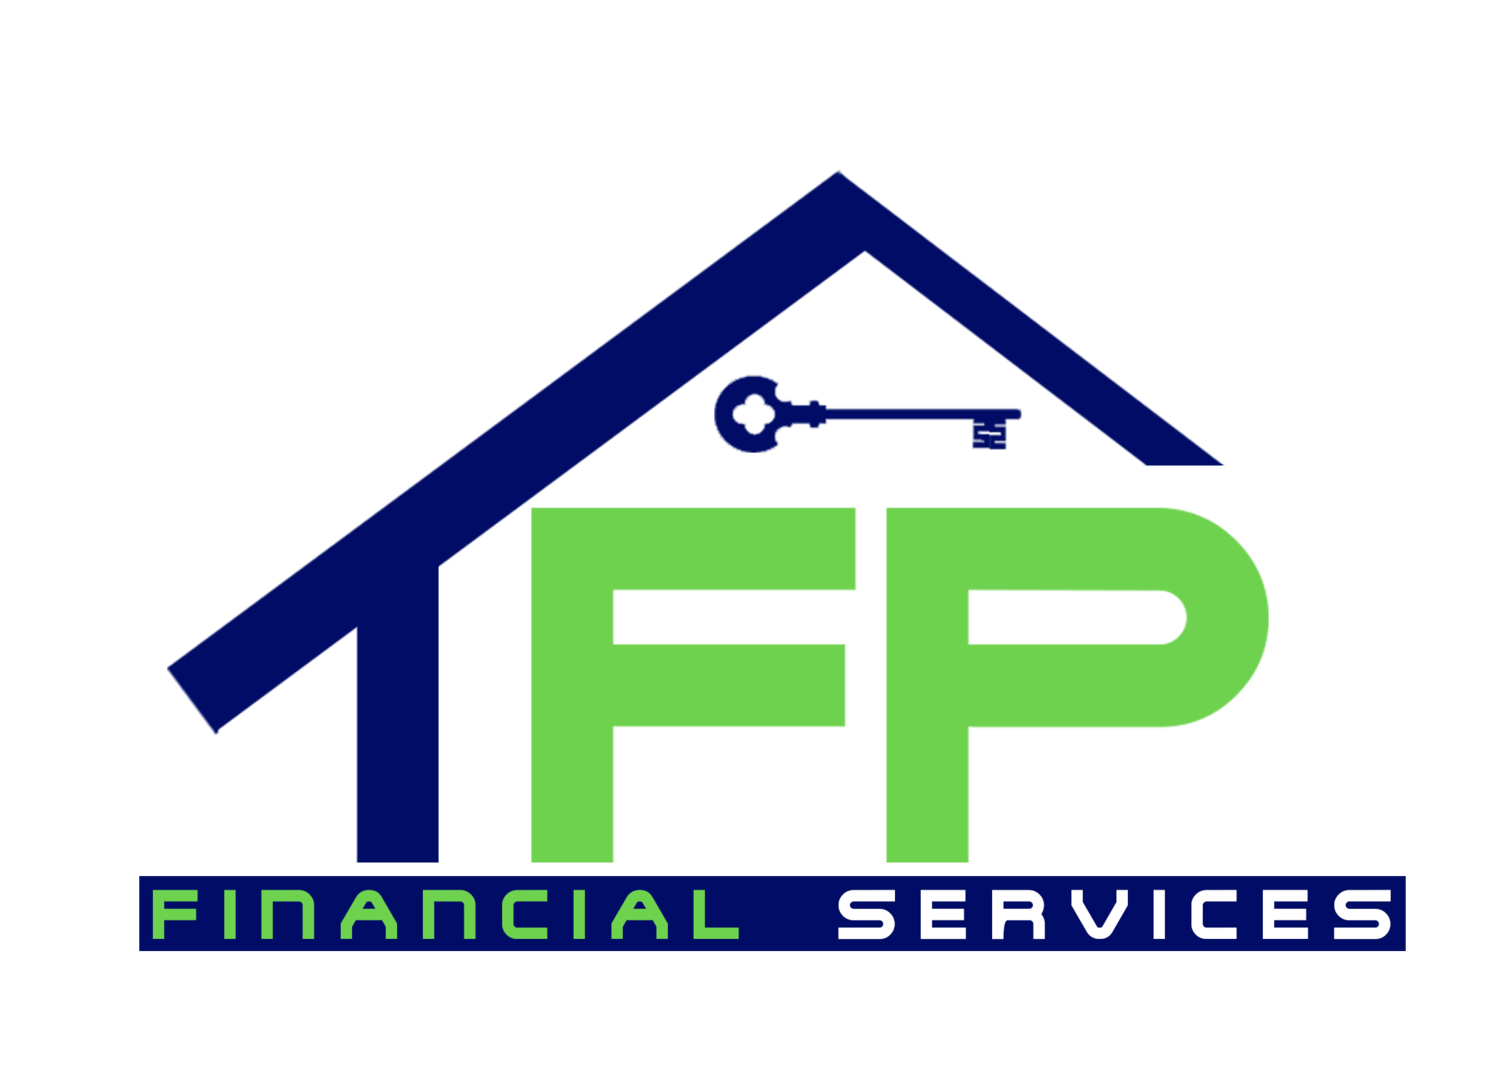 TFP Financial Services - Accounting, Tax Preparation, Credit Repair, Business Consulting